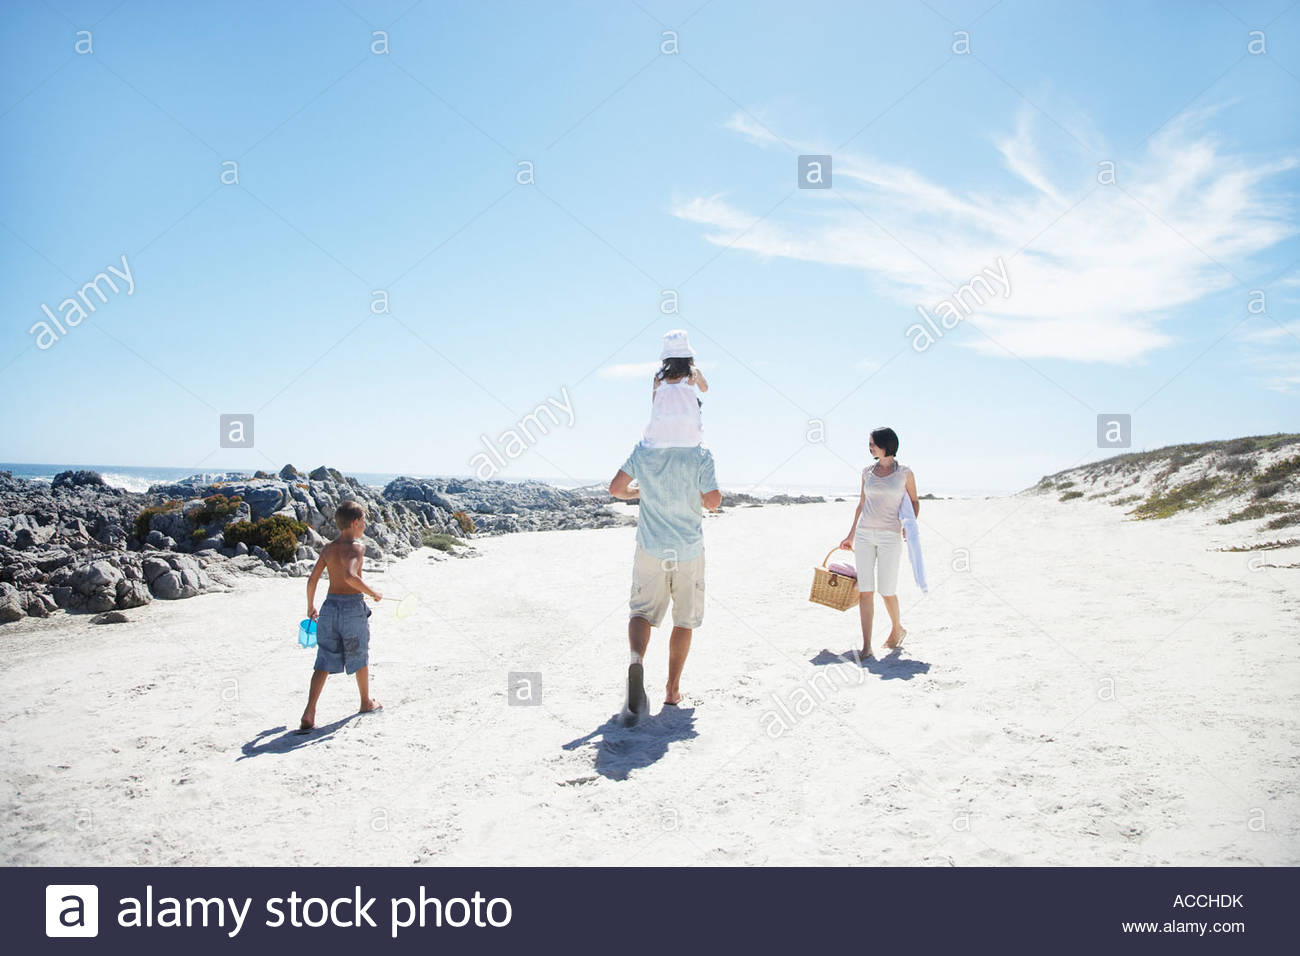 A family going to have a picnic at the beach - Stock Image